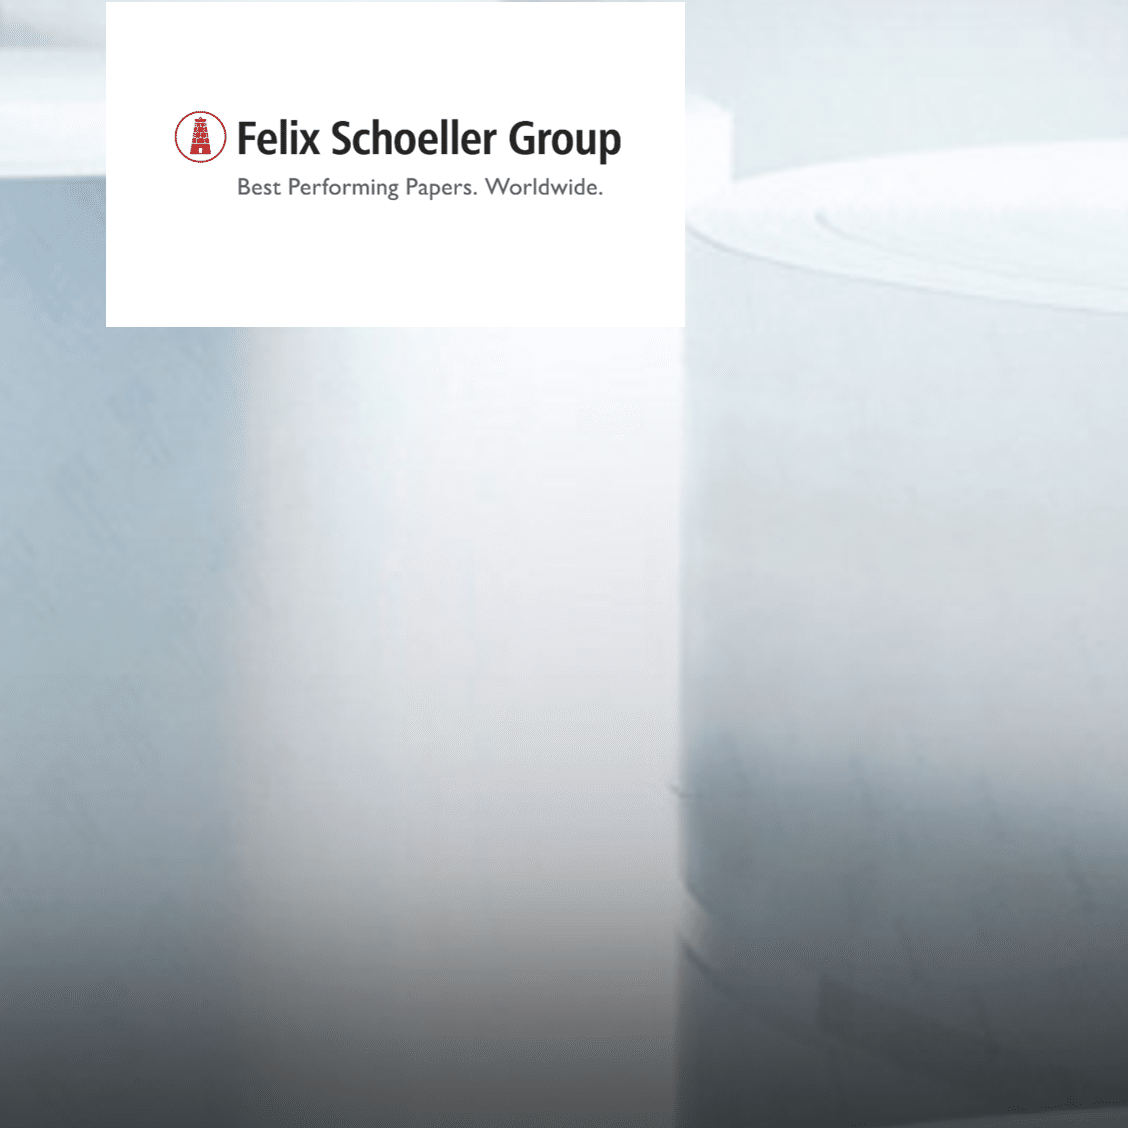 Felix-Schoeller-Group